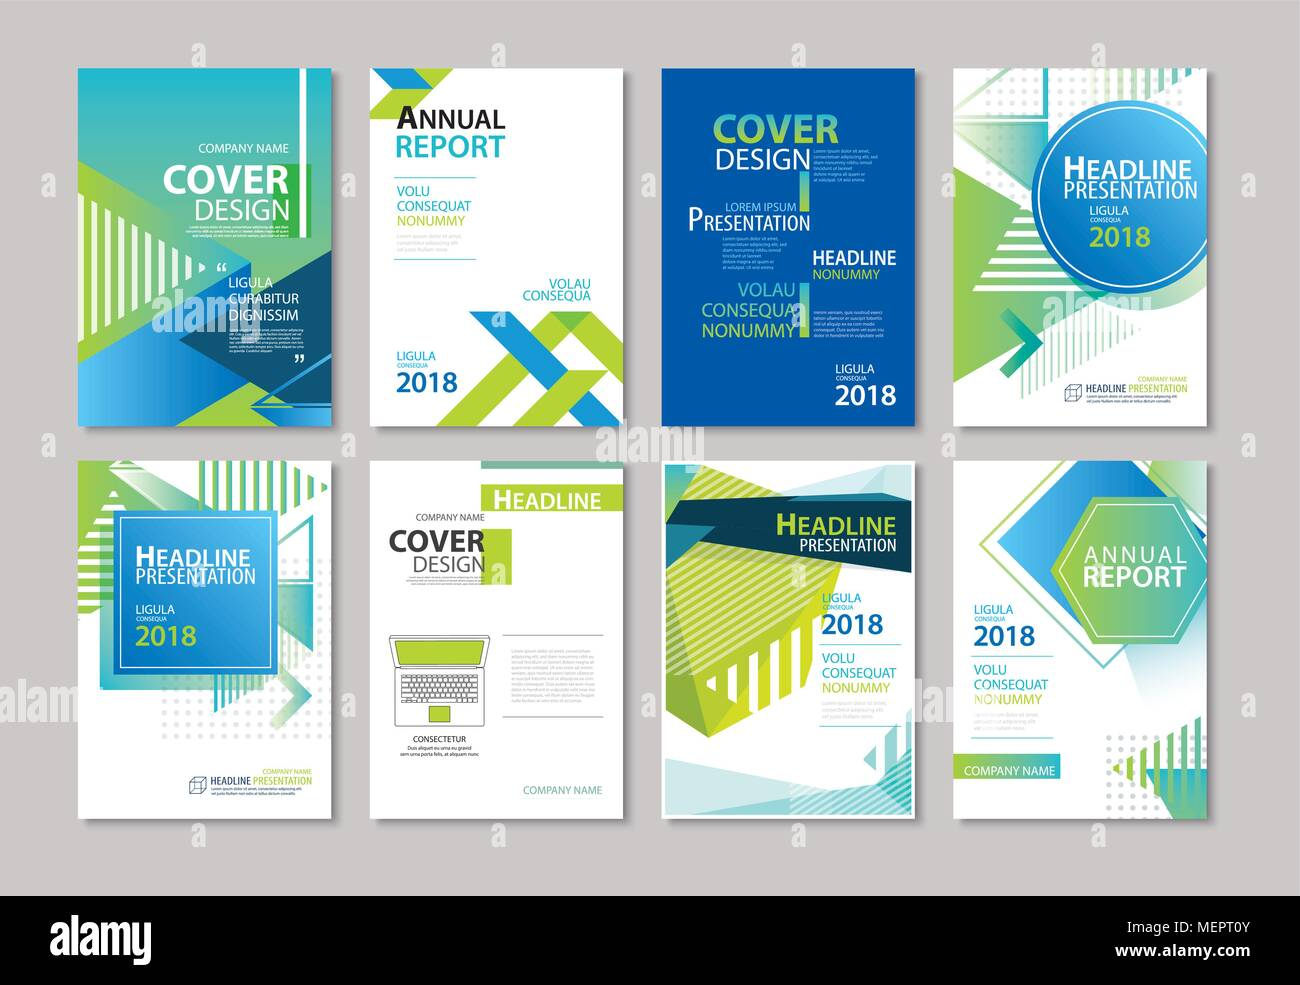 Set of blue cover brochure, flyer, annual report, design layout templates. Use for business magazine, presentation, portfolio, poster, corporate backg - Stock Image